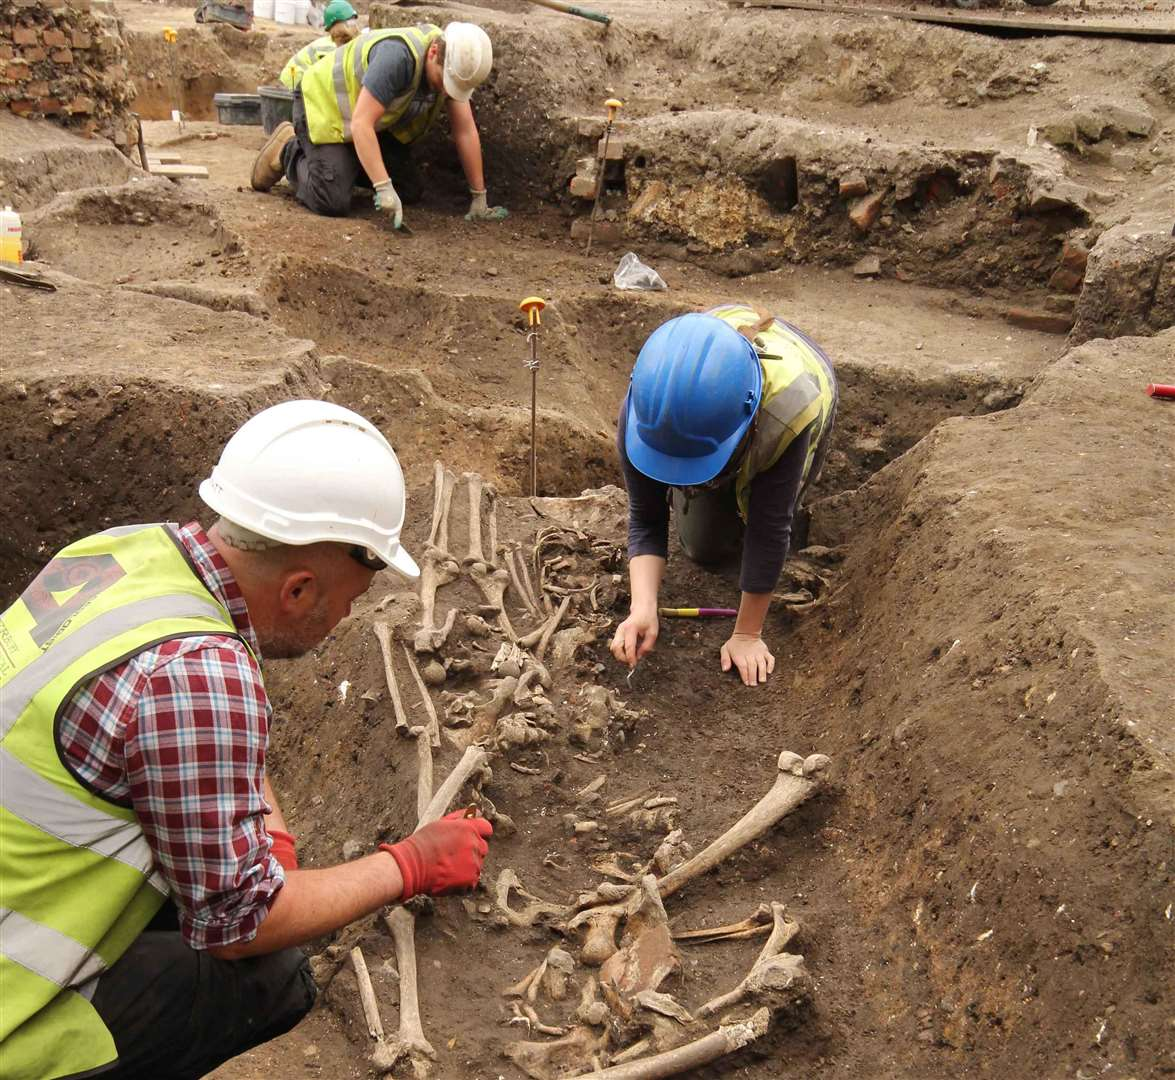 Excavations this summer in Canterbury have revealed the skeletons of those living during the Roman occupation